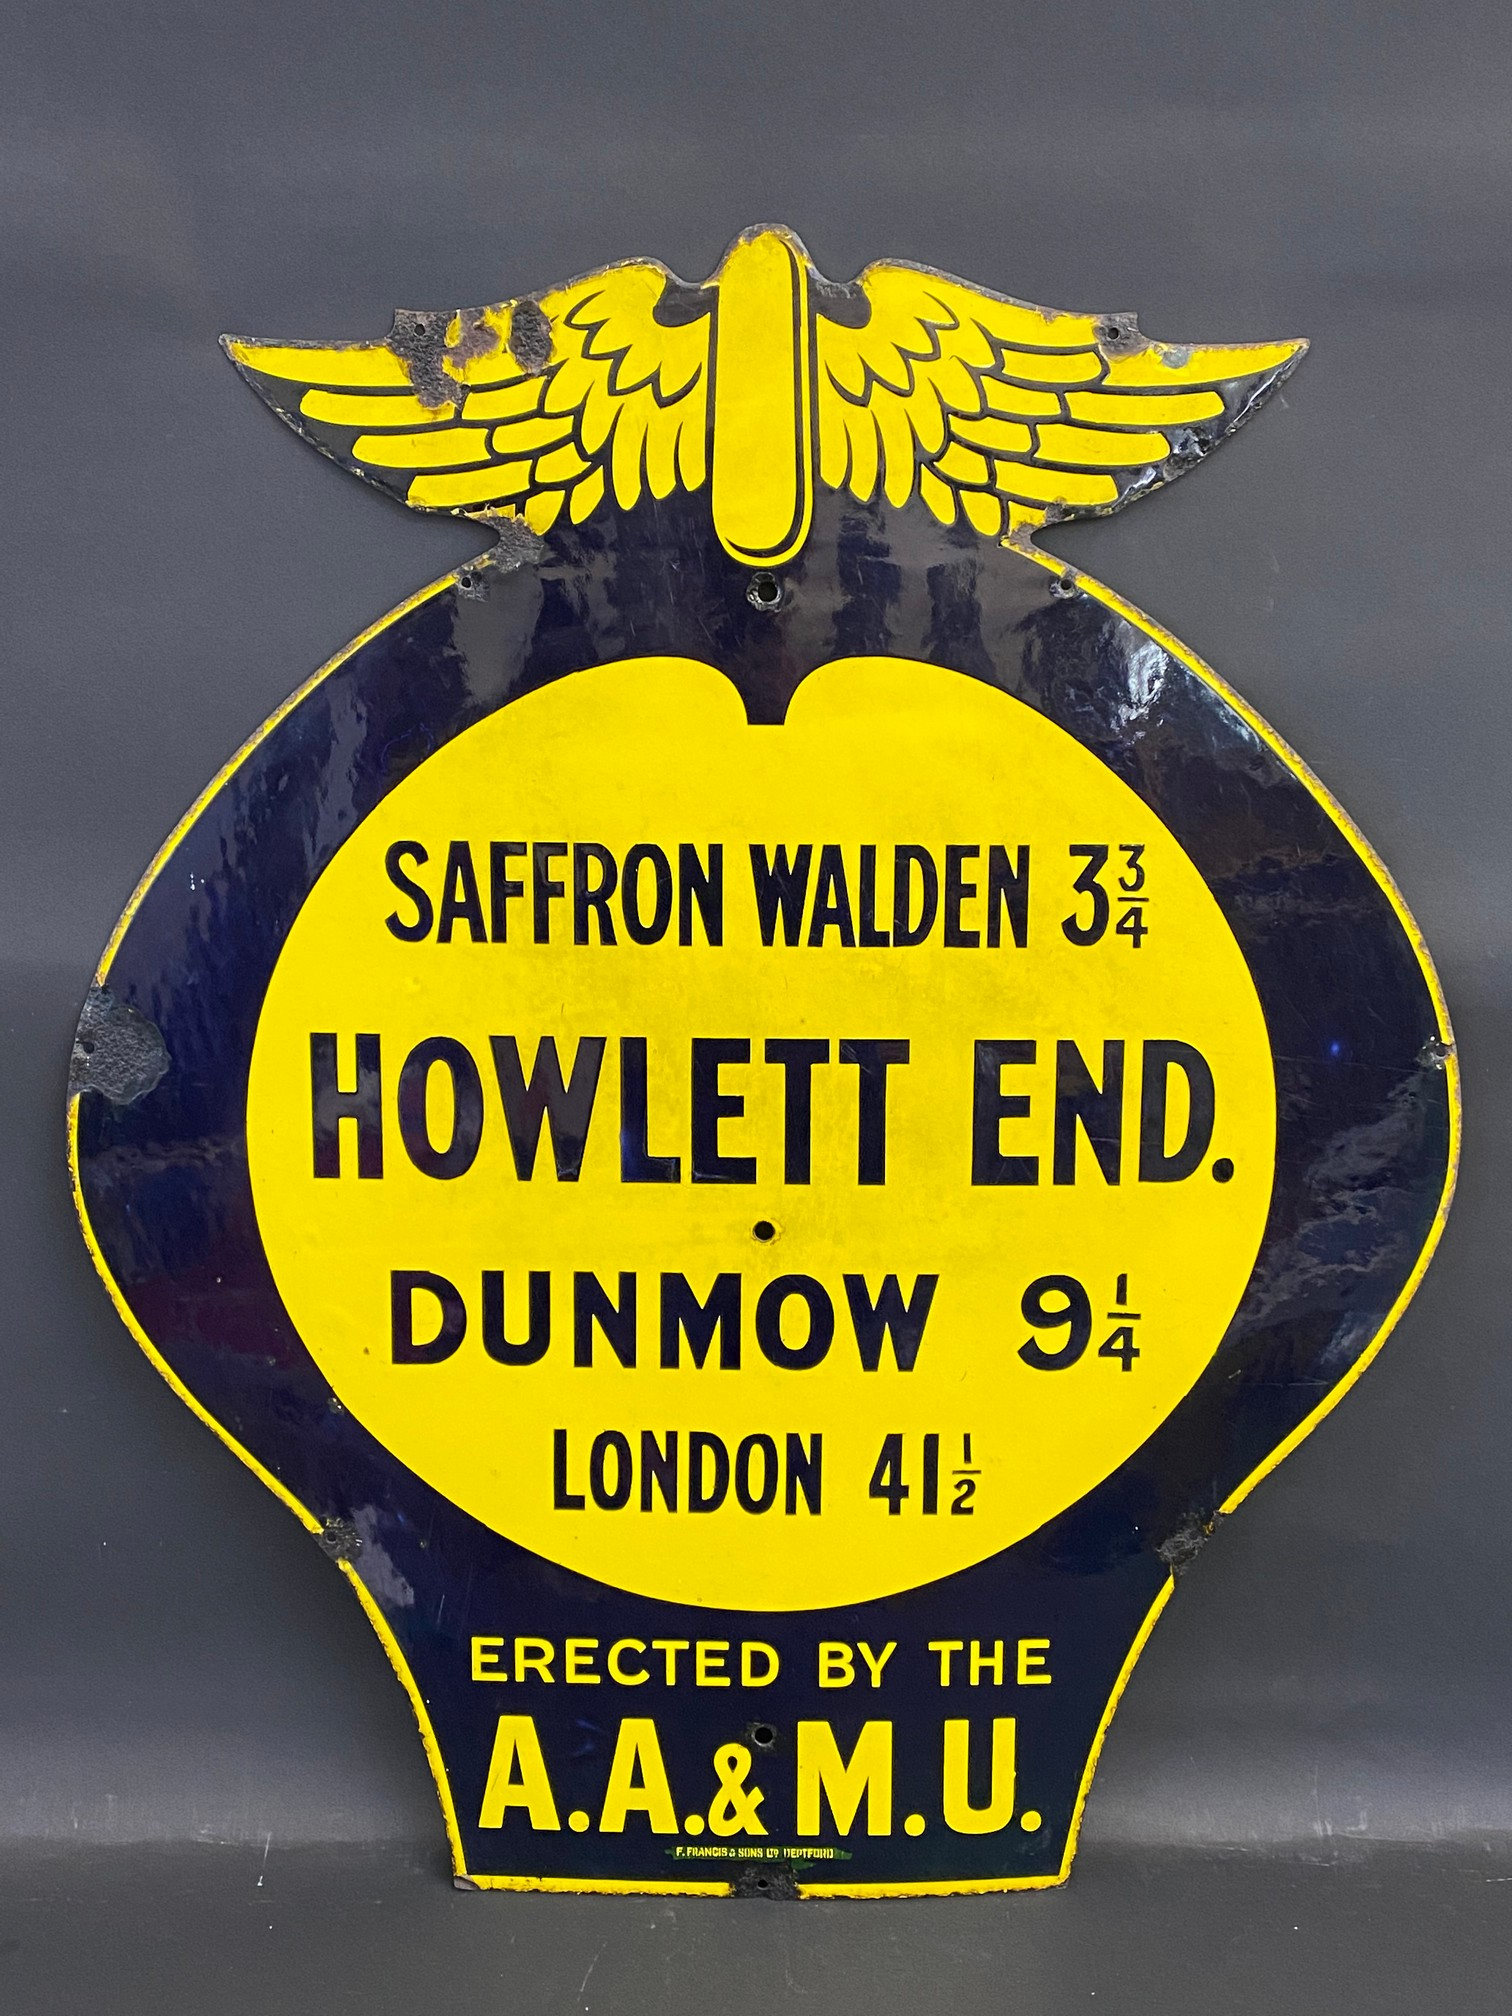 An early AA and Motor Union enamel location sign for Howlett End, Saffron Waldon 3 3/4 miles, the